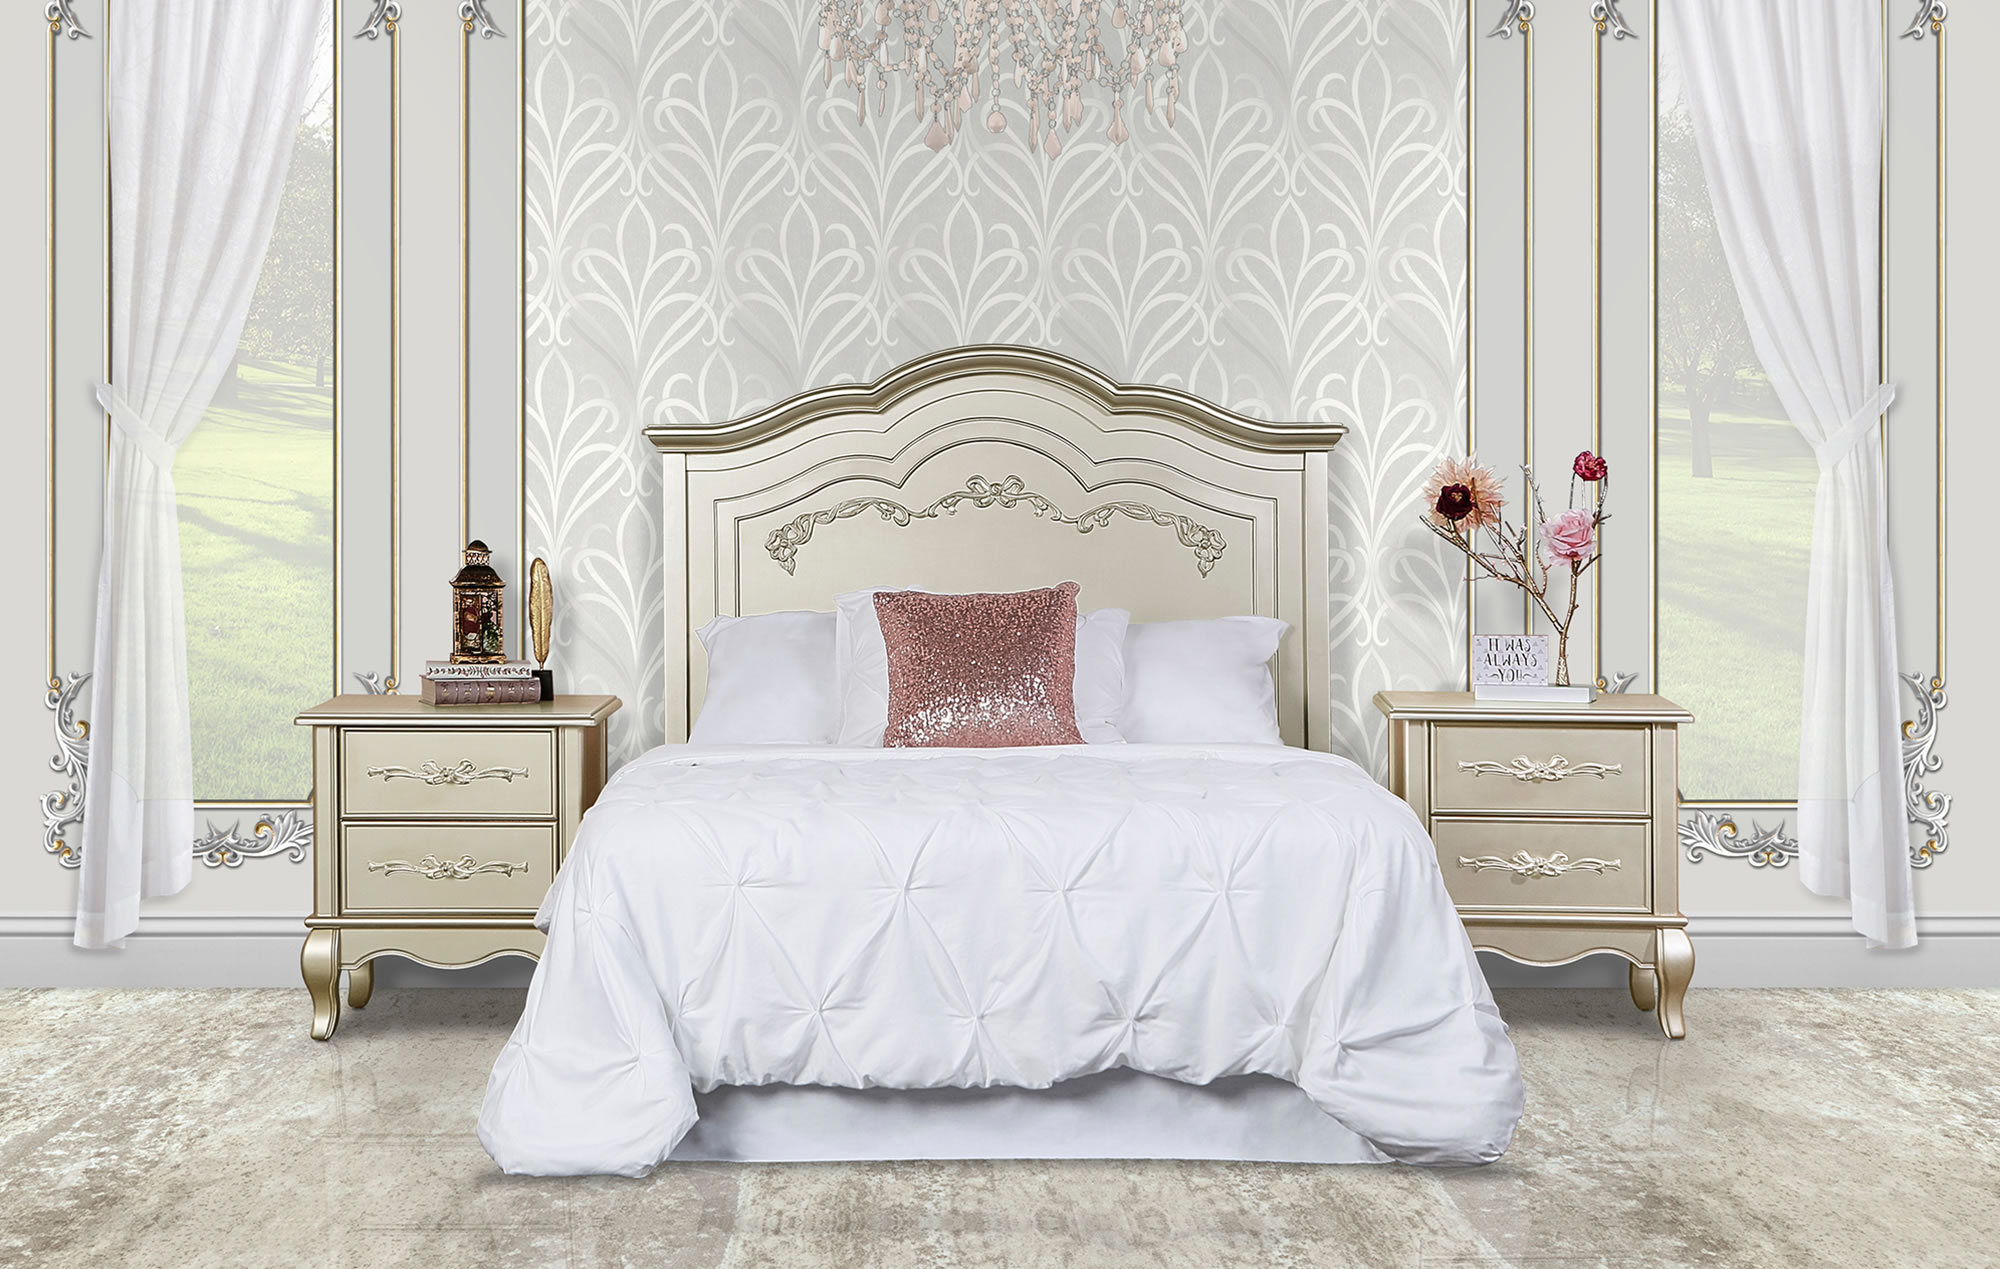 832-GD Aurora Full Bed Headboard RS-1